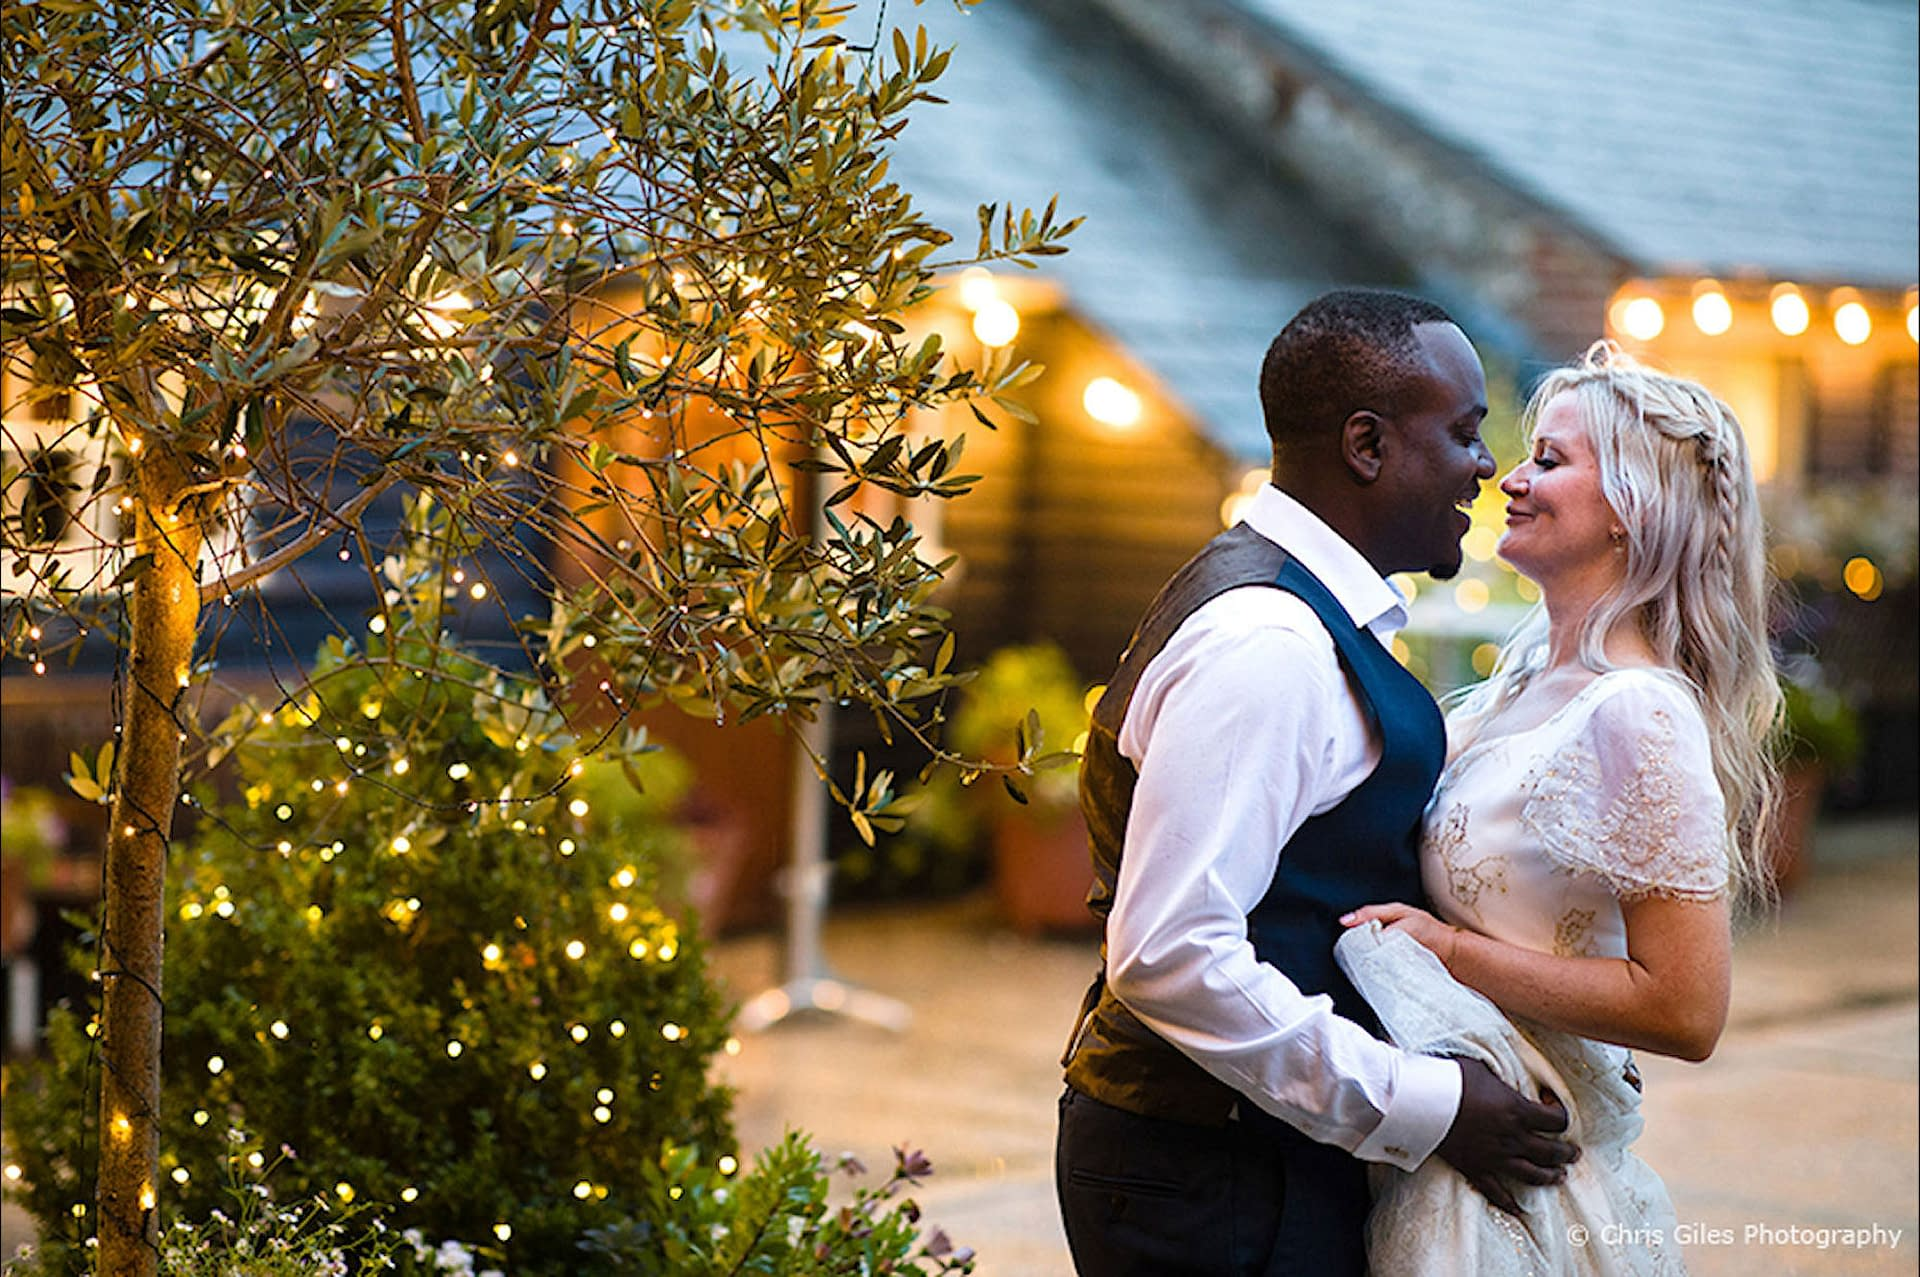 Outdoor wedding lighting using fairy lights for decorating trees and bushes in the courtyard at Upwaltham Barns, UK wedding venue